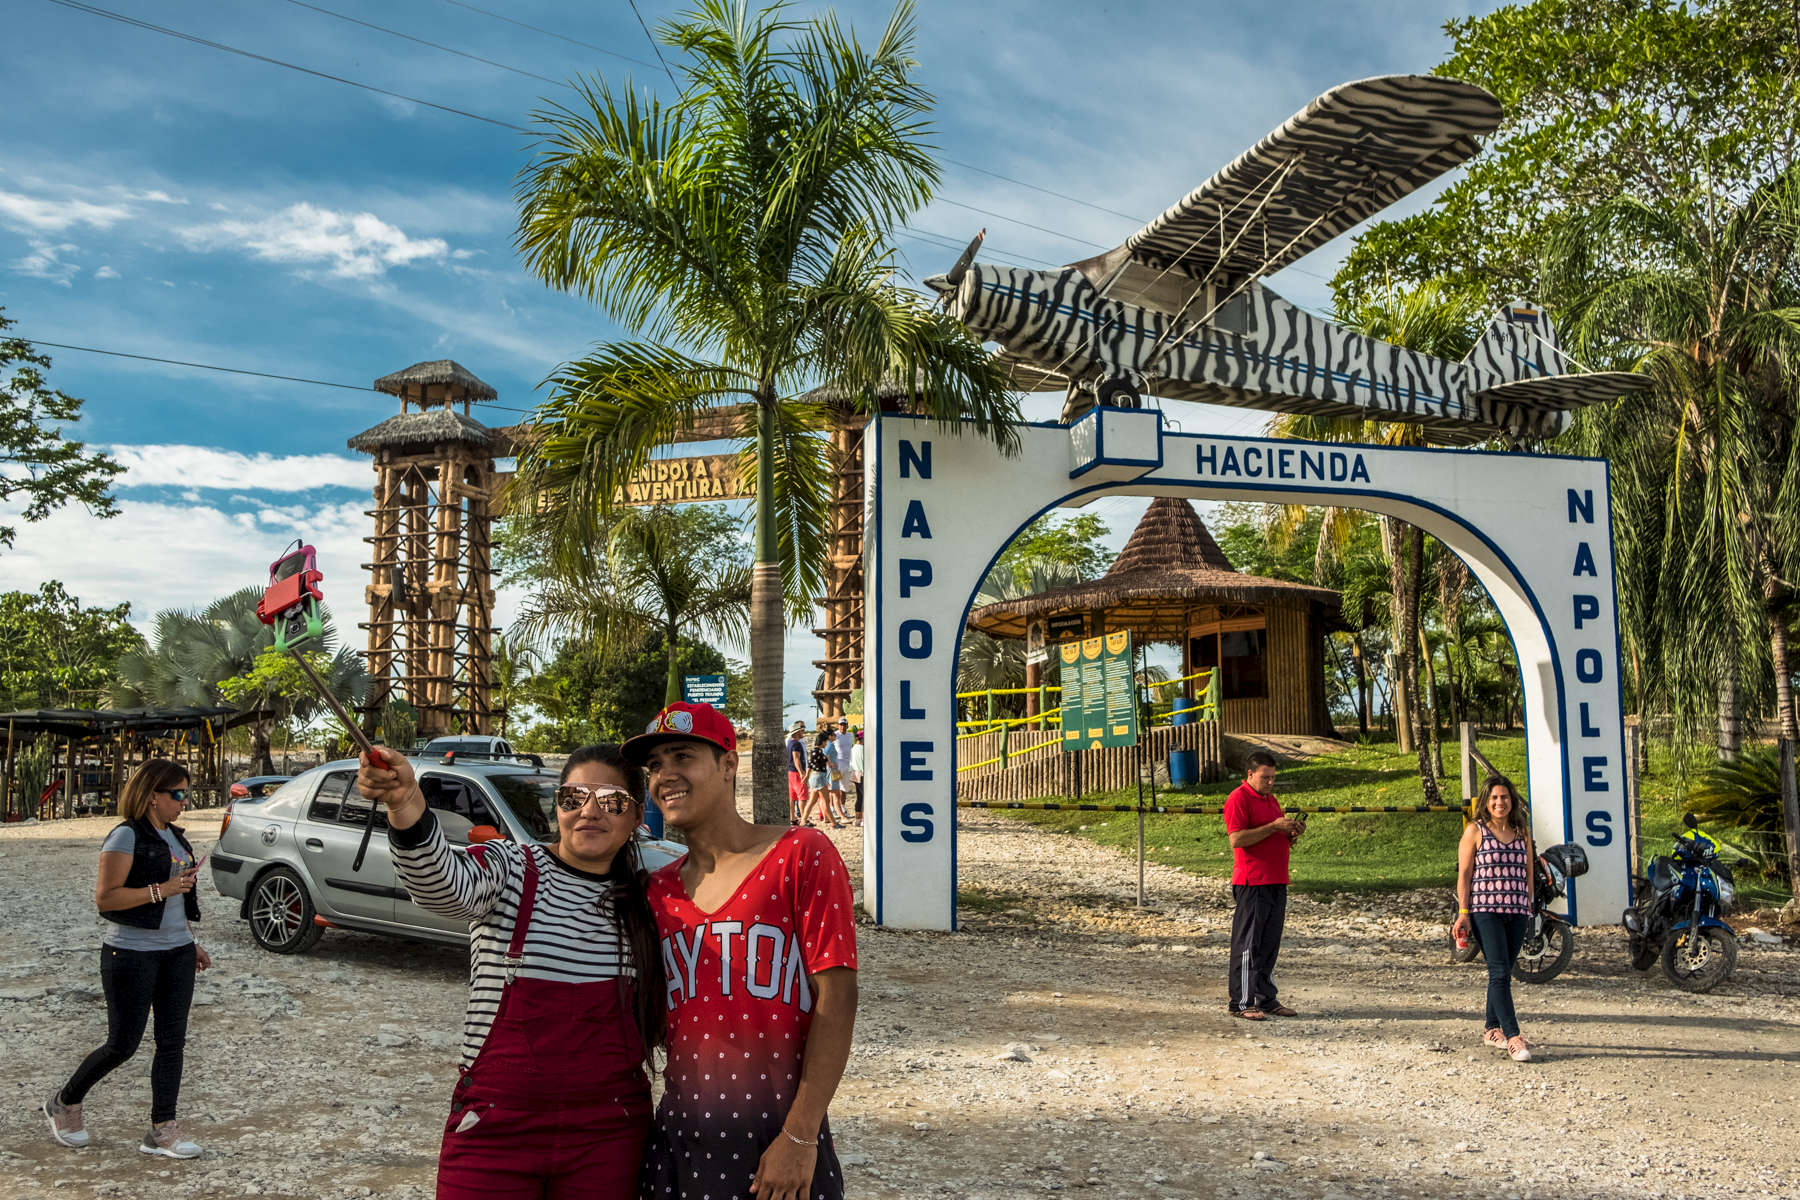 August 19, 2017. Puerto Triunfo, Antioquia, Colombia. Visitors take pictures at the old entrance of the Hacienda Napoles. The airplane on top it has been said to be a replica of the Piper PA-18 airplane which transported Escobar's first shipment of cocaine to the US. The luxurious 7.7 sq miles was build and owned by Pablo Escobar in the early 80's. After his death in 1993, the farmed was abandoned and raided. In 2006, the Colombian Government acquired the ownership of the property. In 2014, an African theme park was built. Parque Tematico Hacienda Napoles (57.018000520344, http://www.haciendanapoles.com/contactenos)